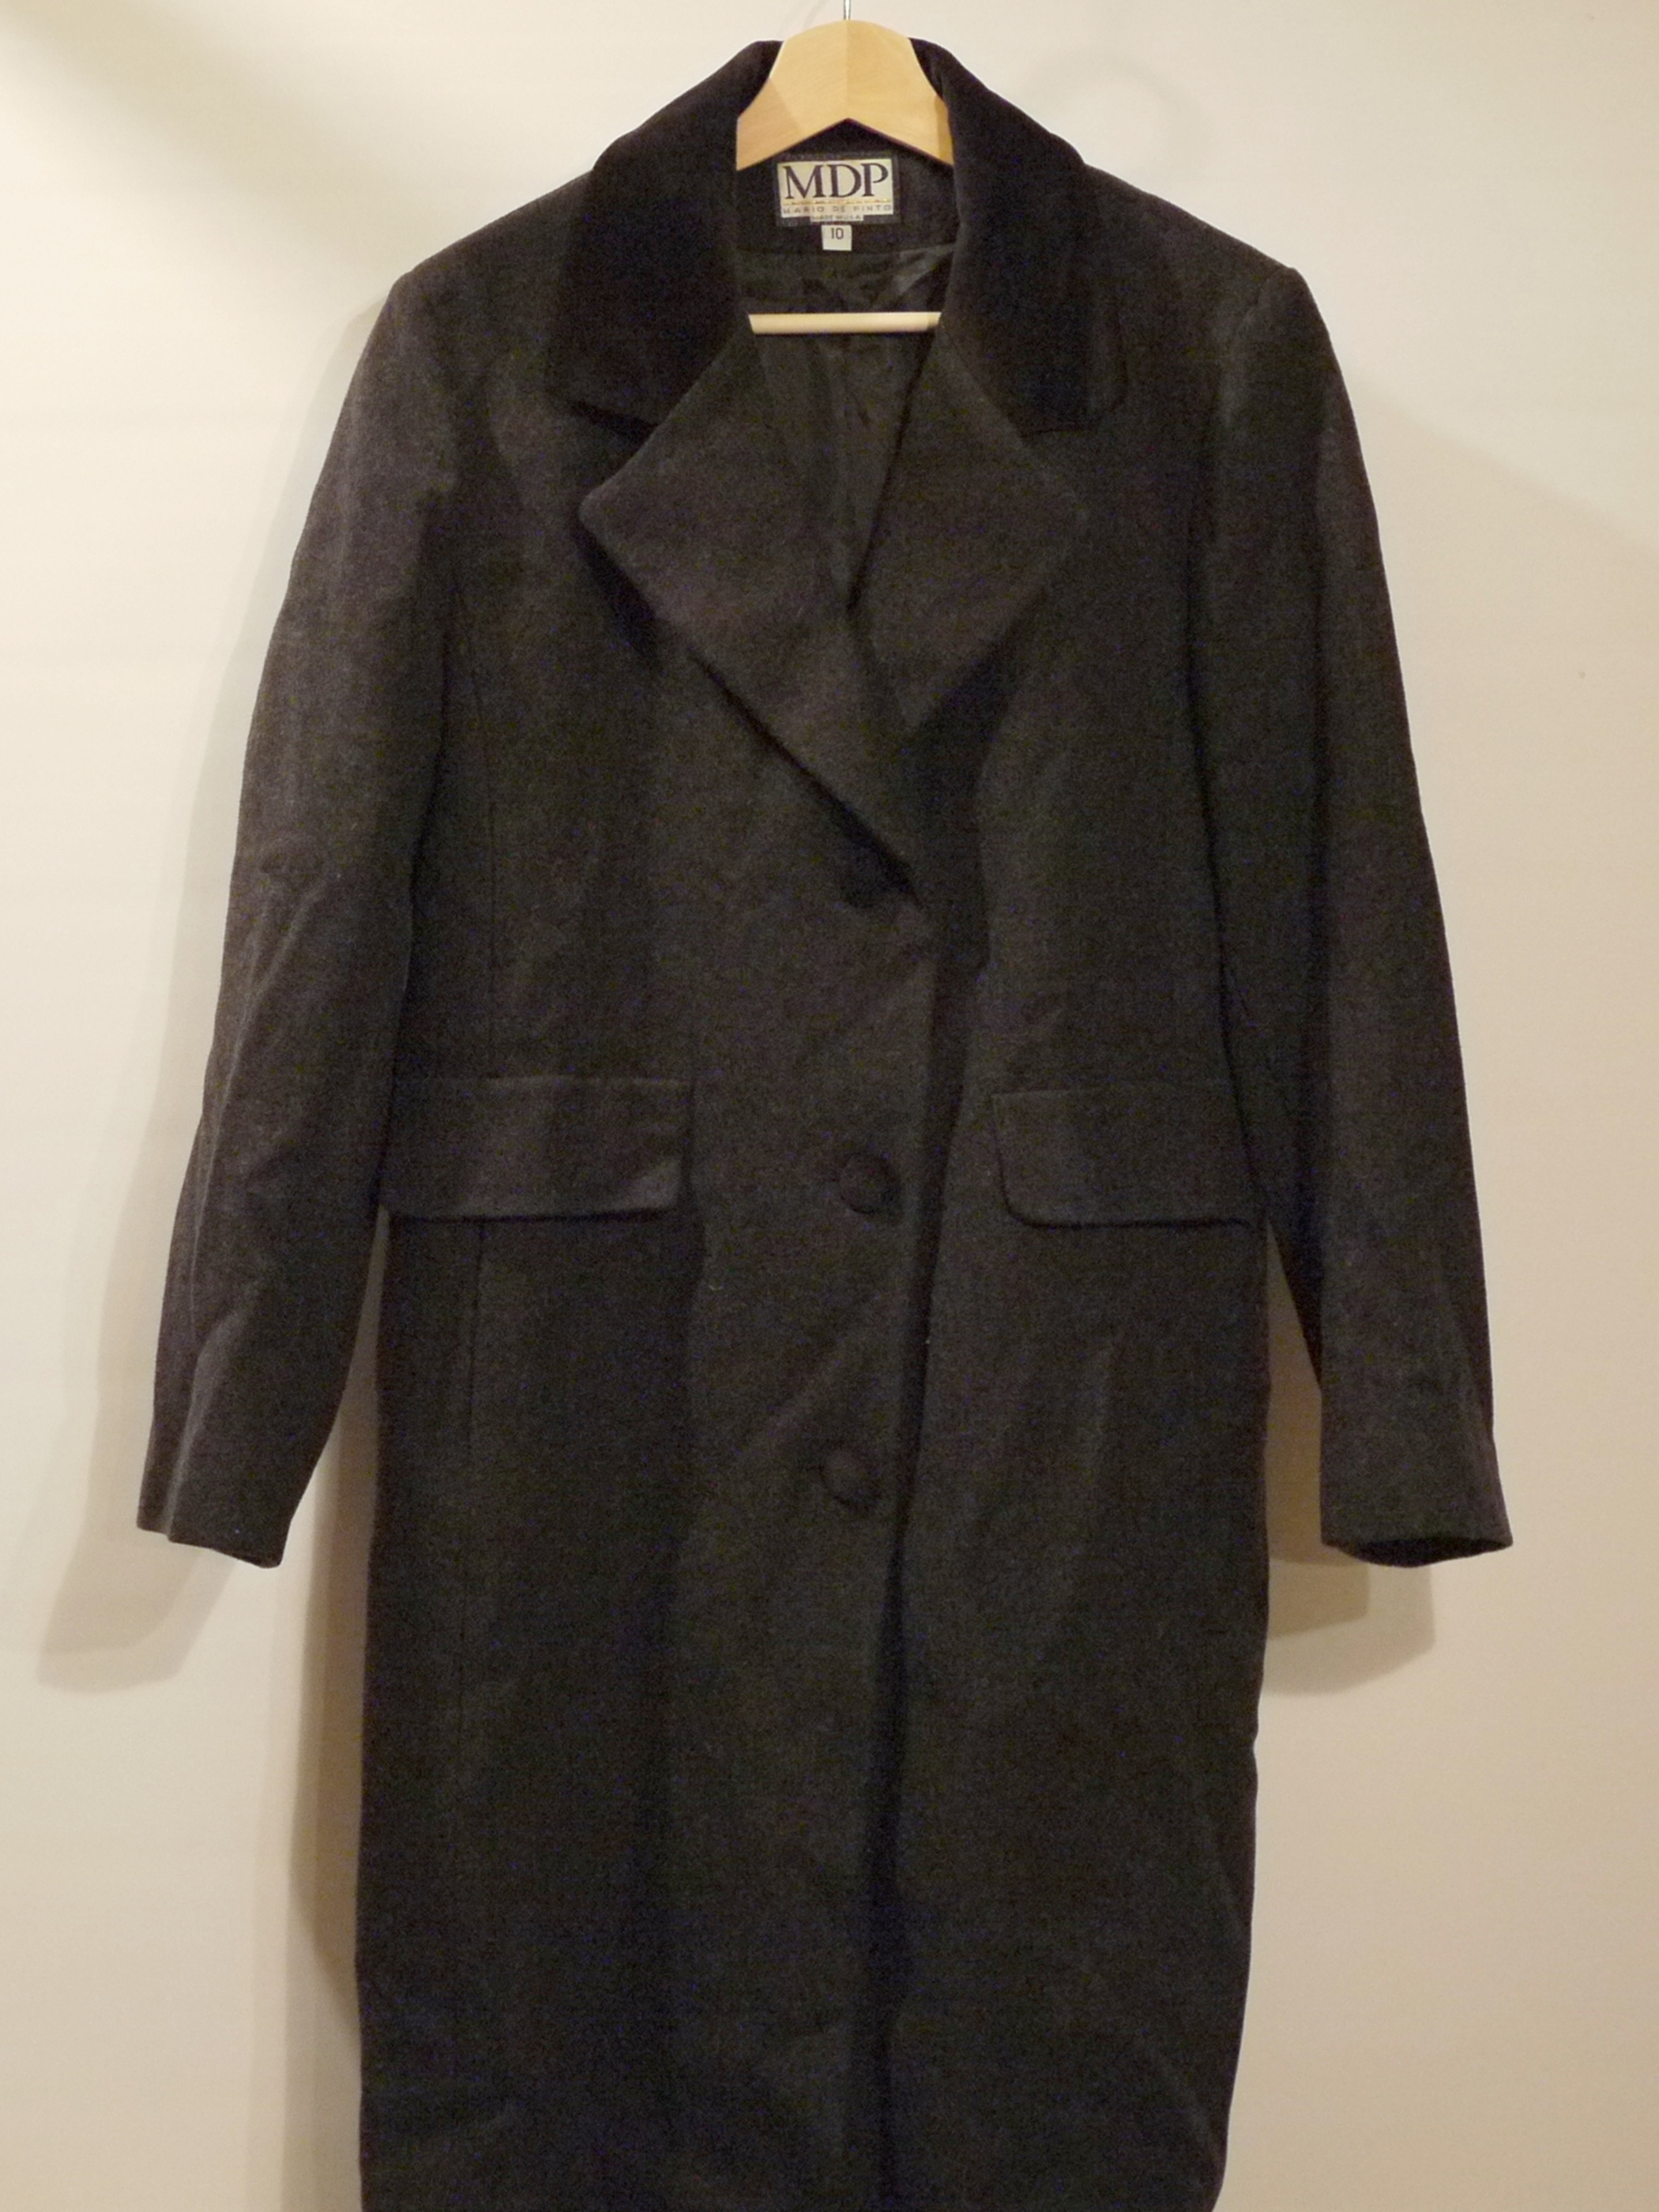 MDP Wool coat Size10